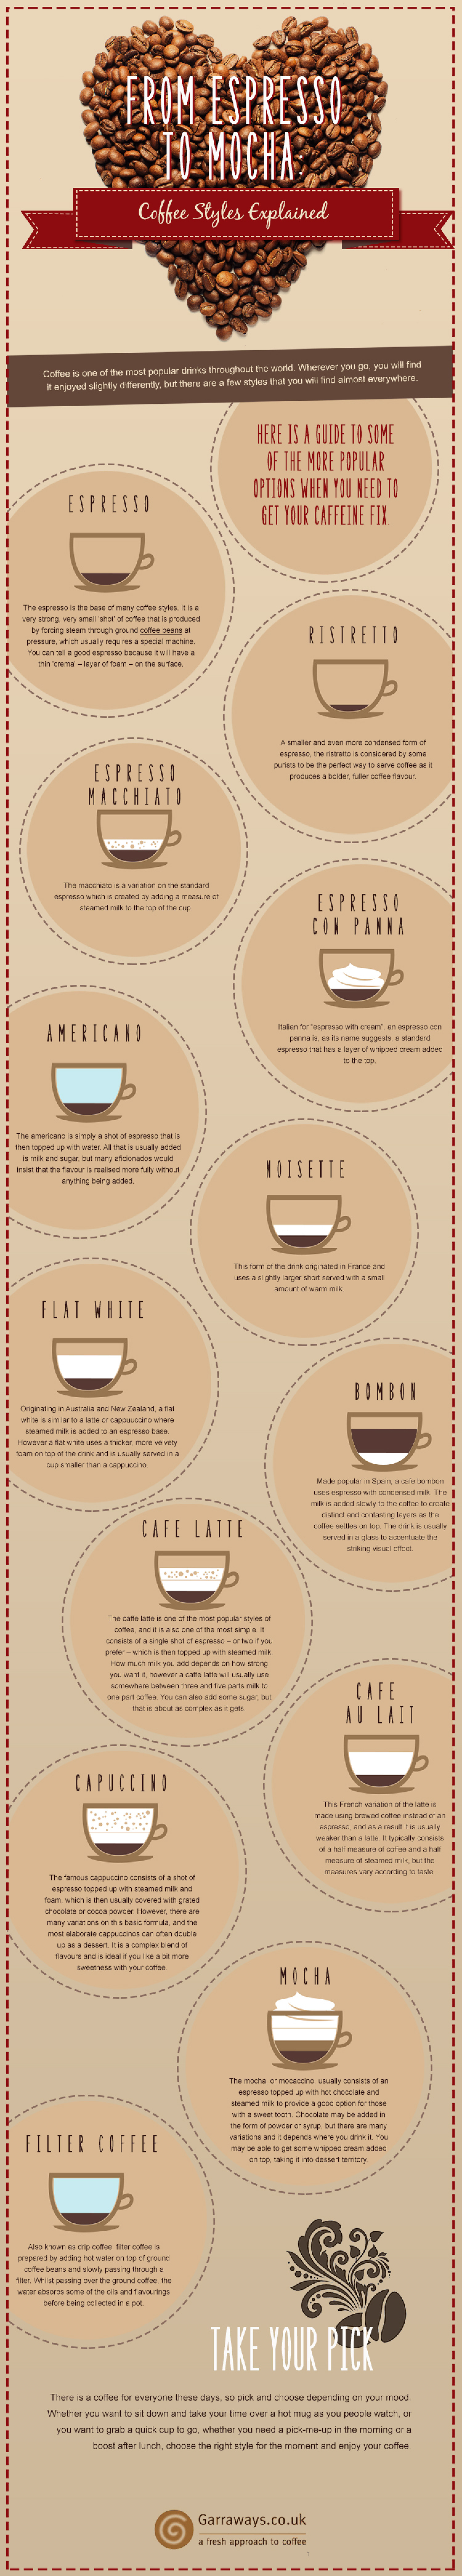 From Espresso to Mocha: Coffee Styles Explained Infographic